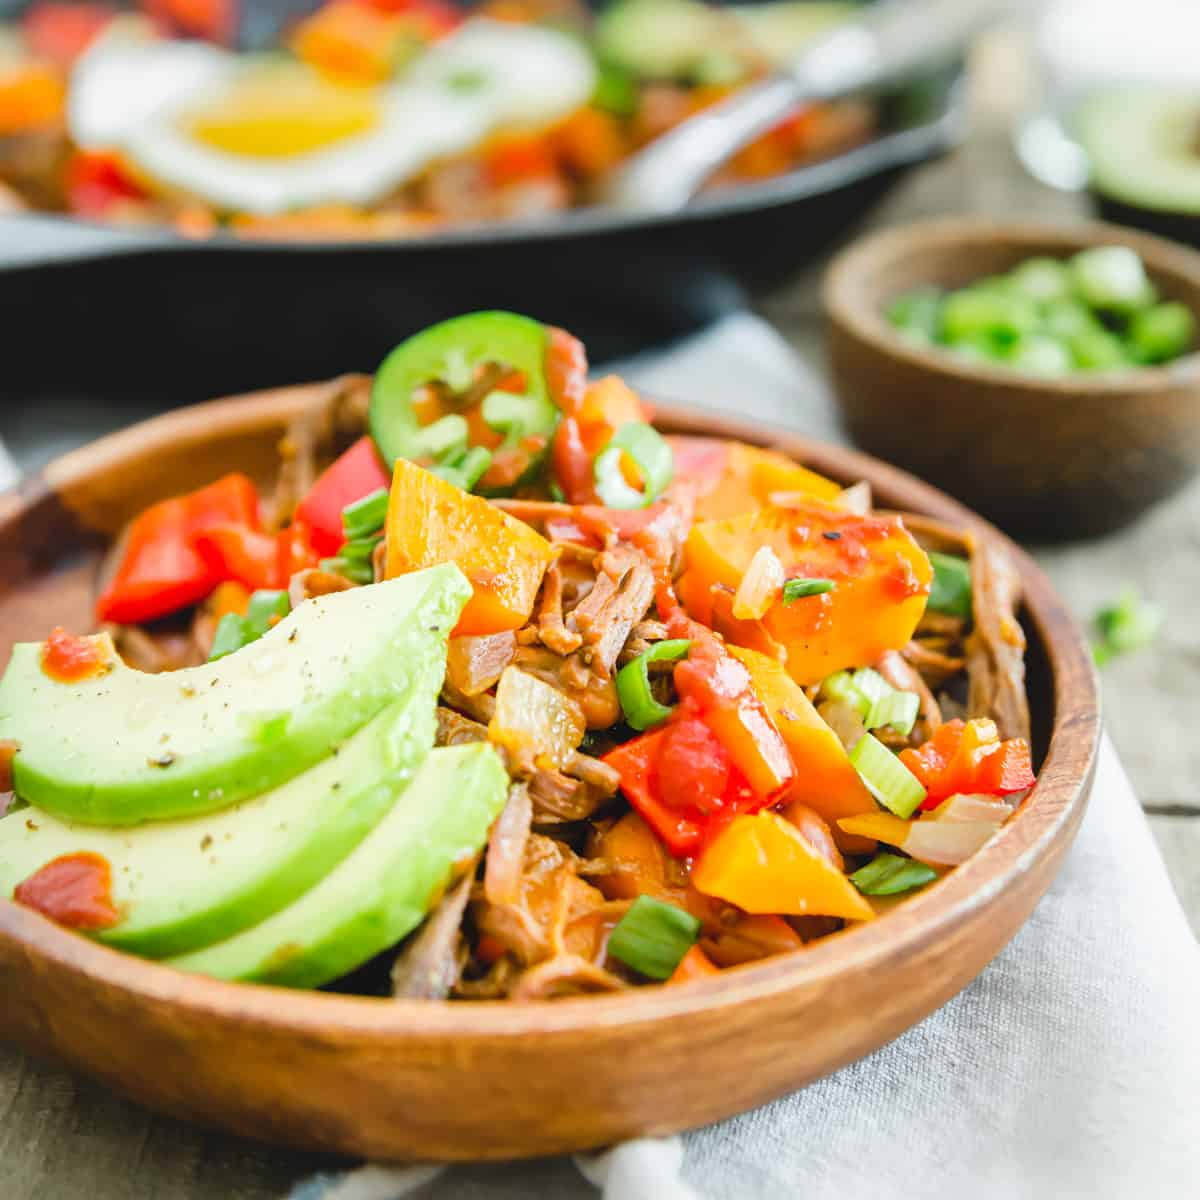 Brisket breakfast hash with sweet potatoes, peppers, beans and sliced avocado for serving.